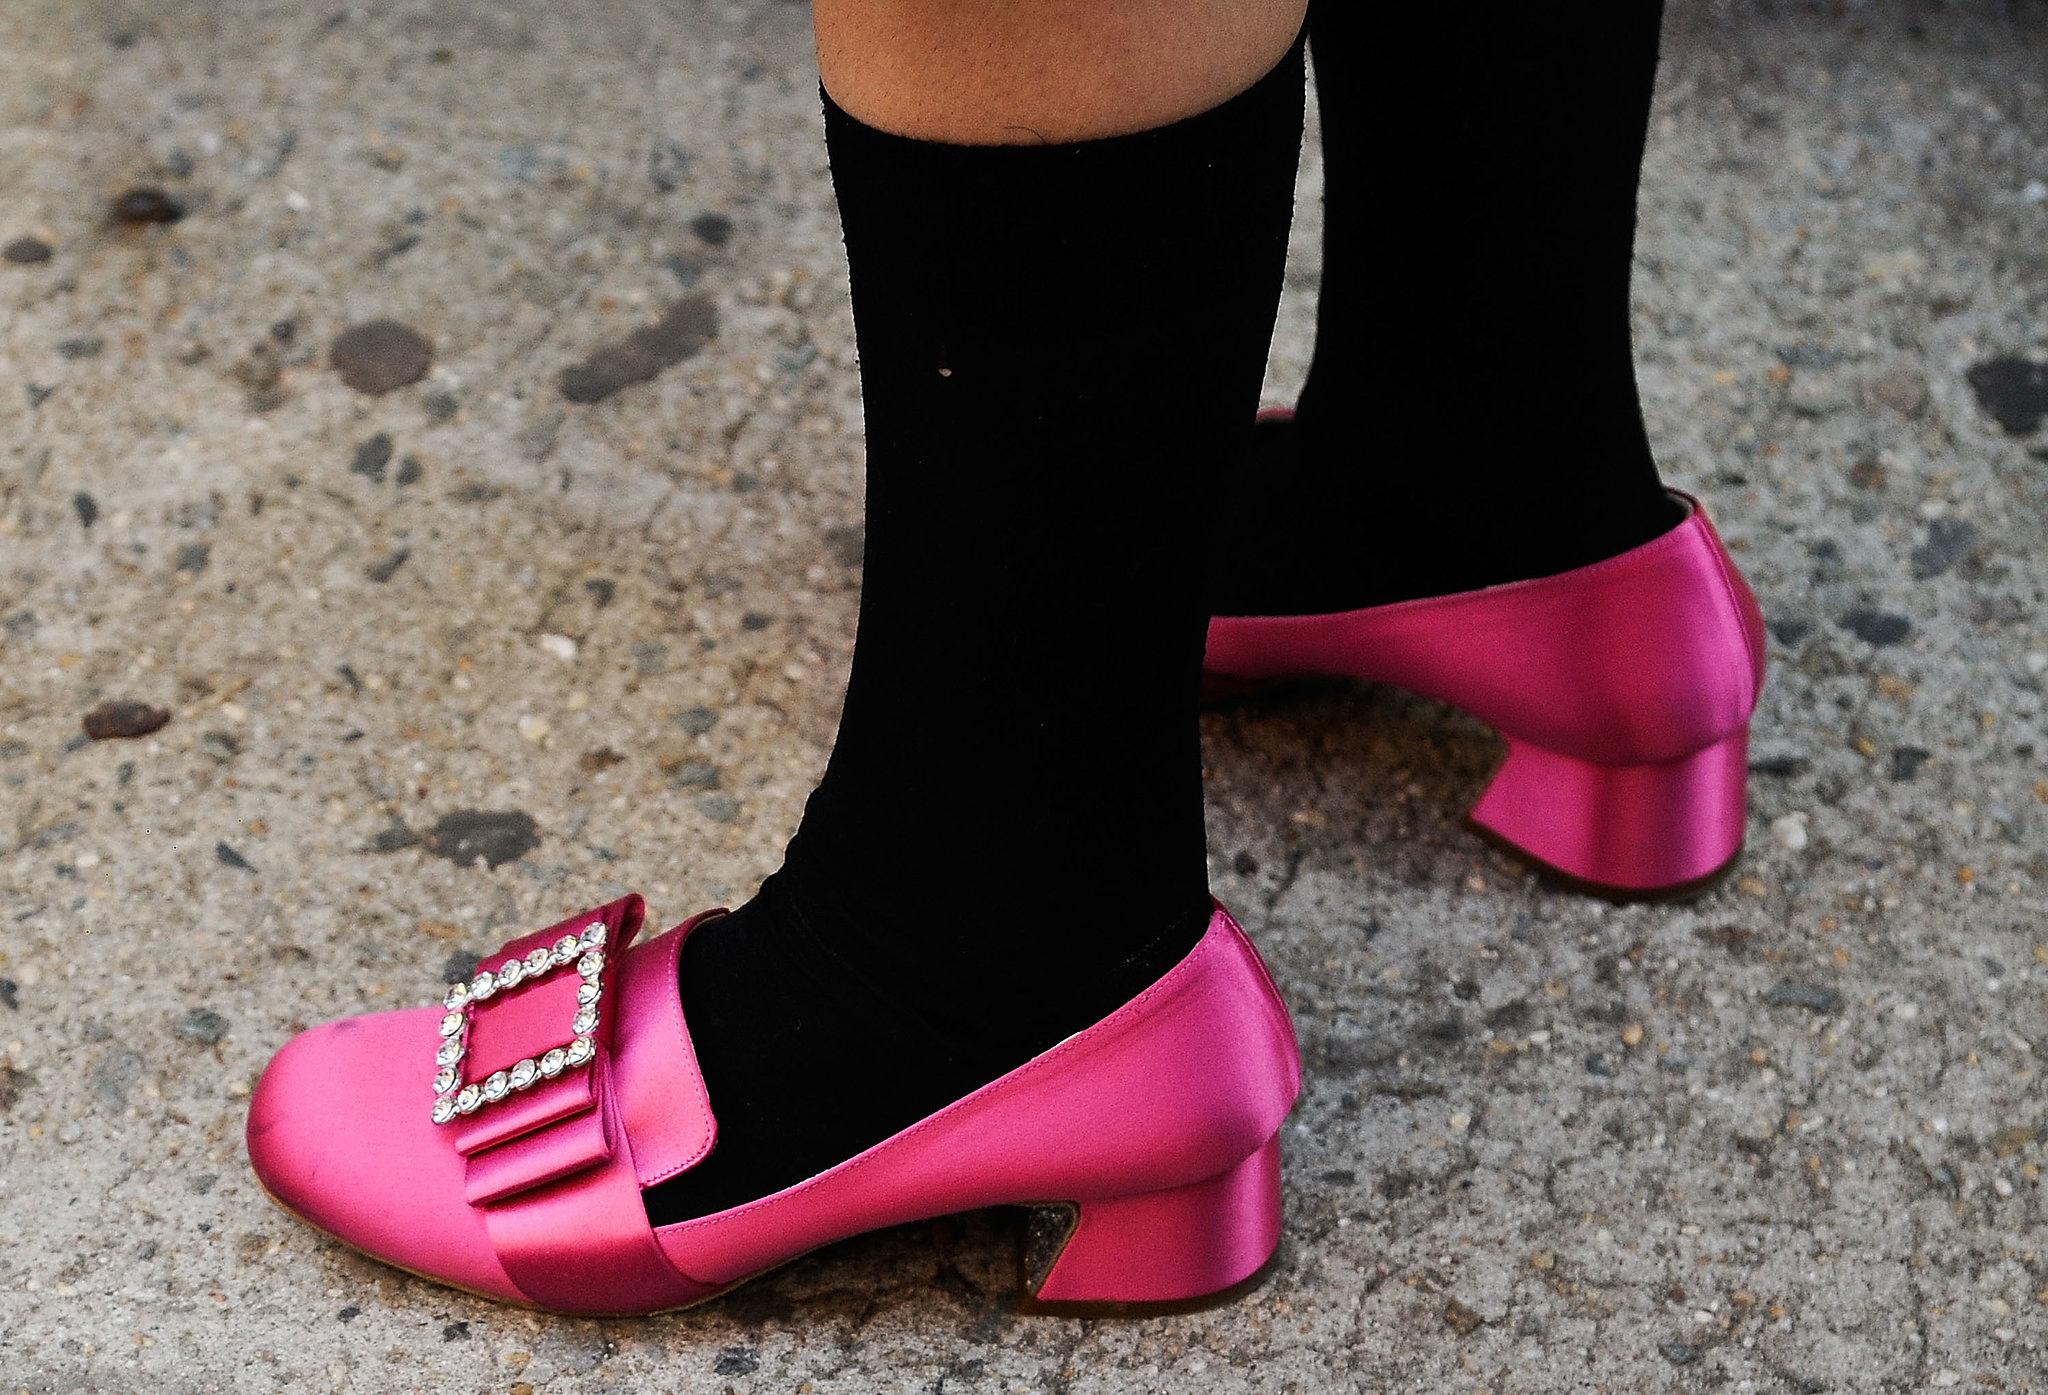 A stark contrast between her bright loafers and socks.